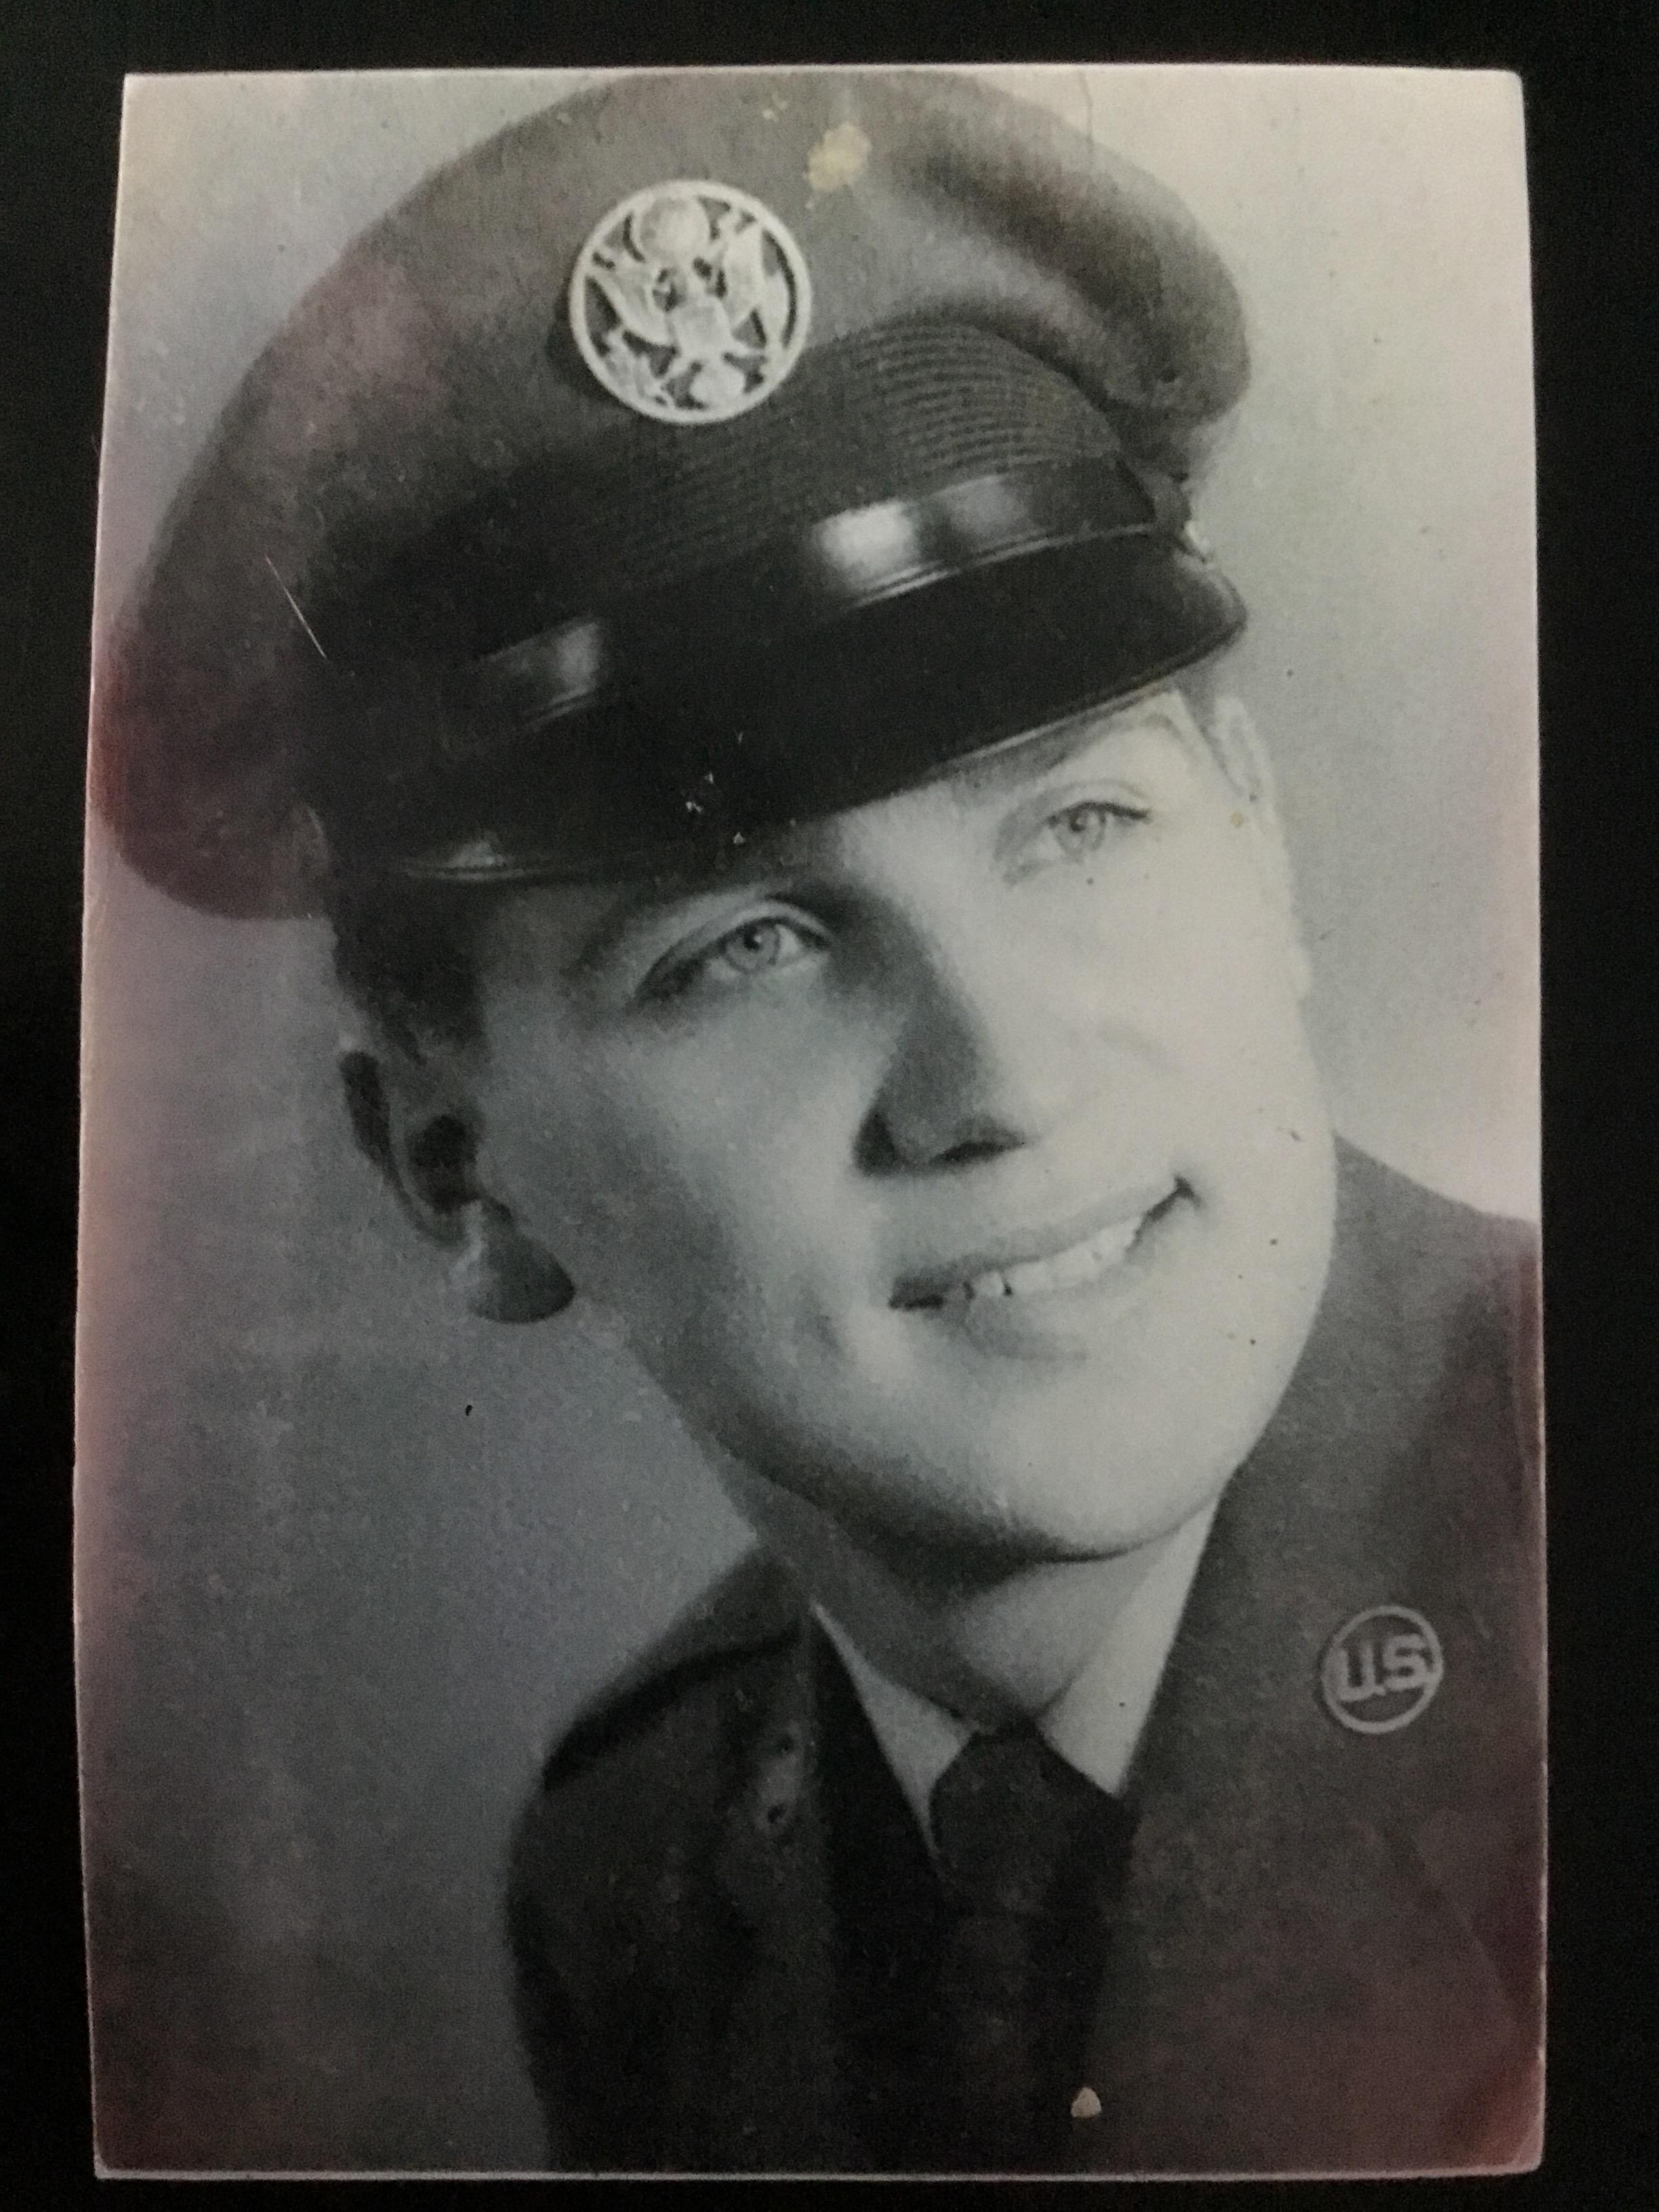 Airman Rivera Nieves in uniform (dated around 1955-1959)